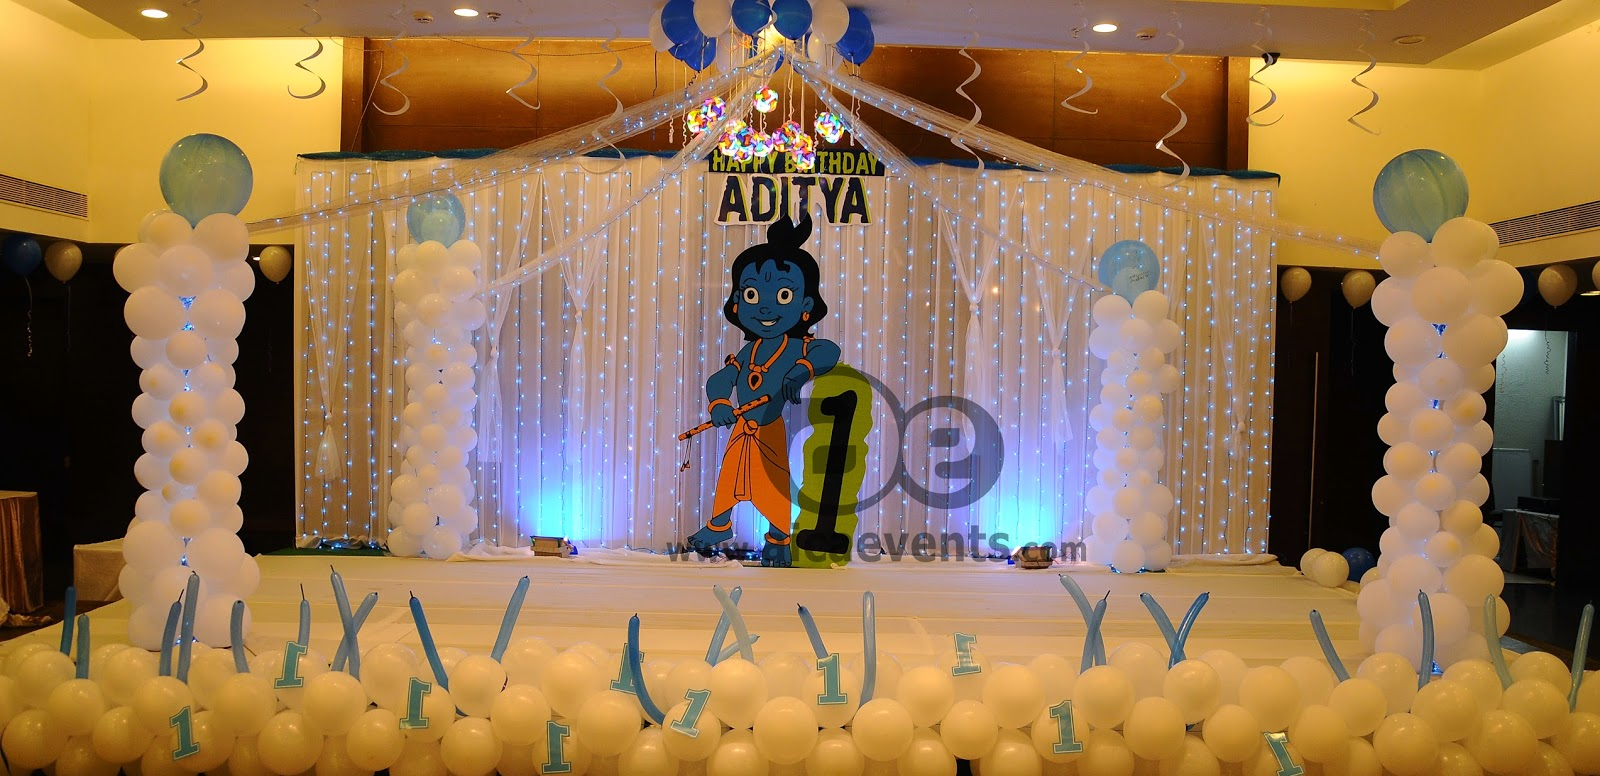 Birthday Party Balloon Backdrop Image Inspiration of Cake and